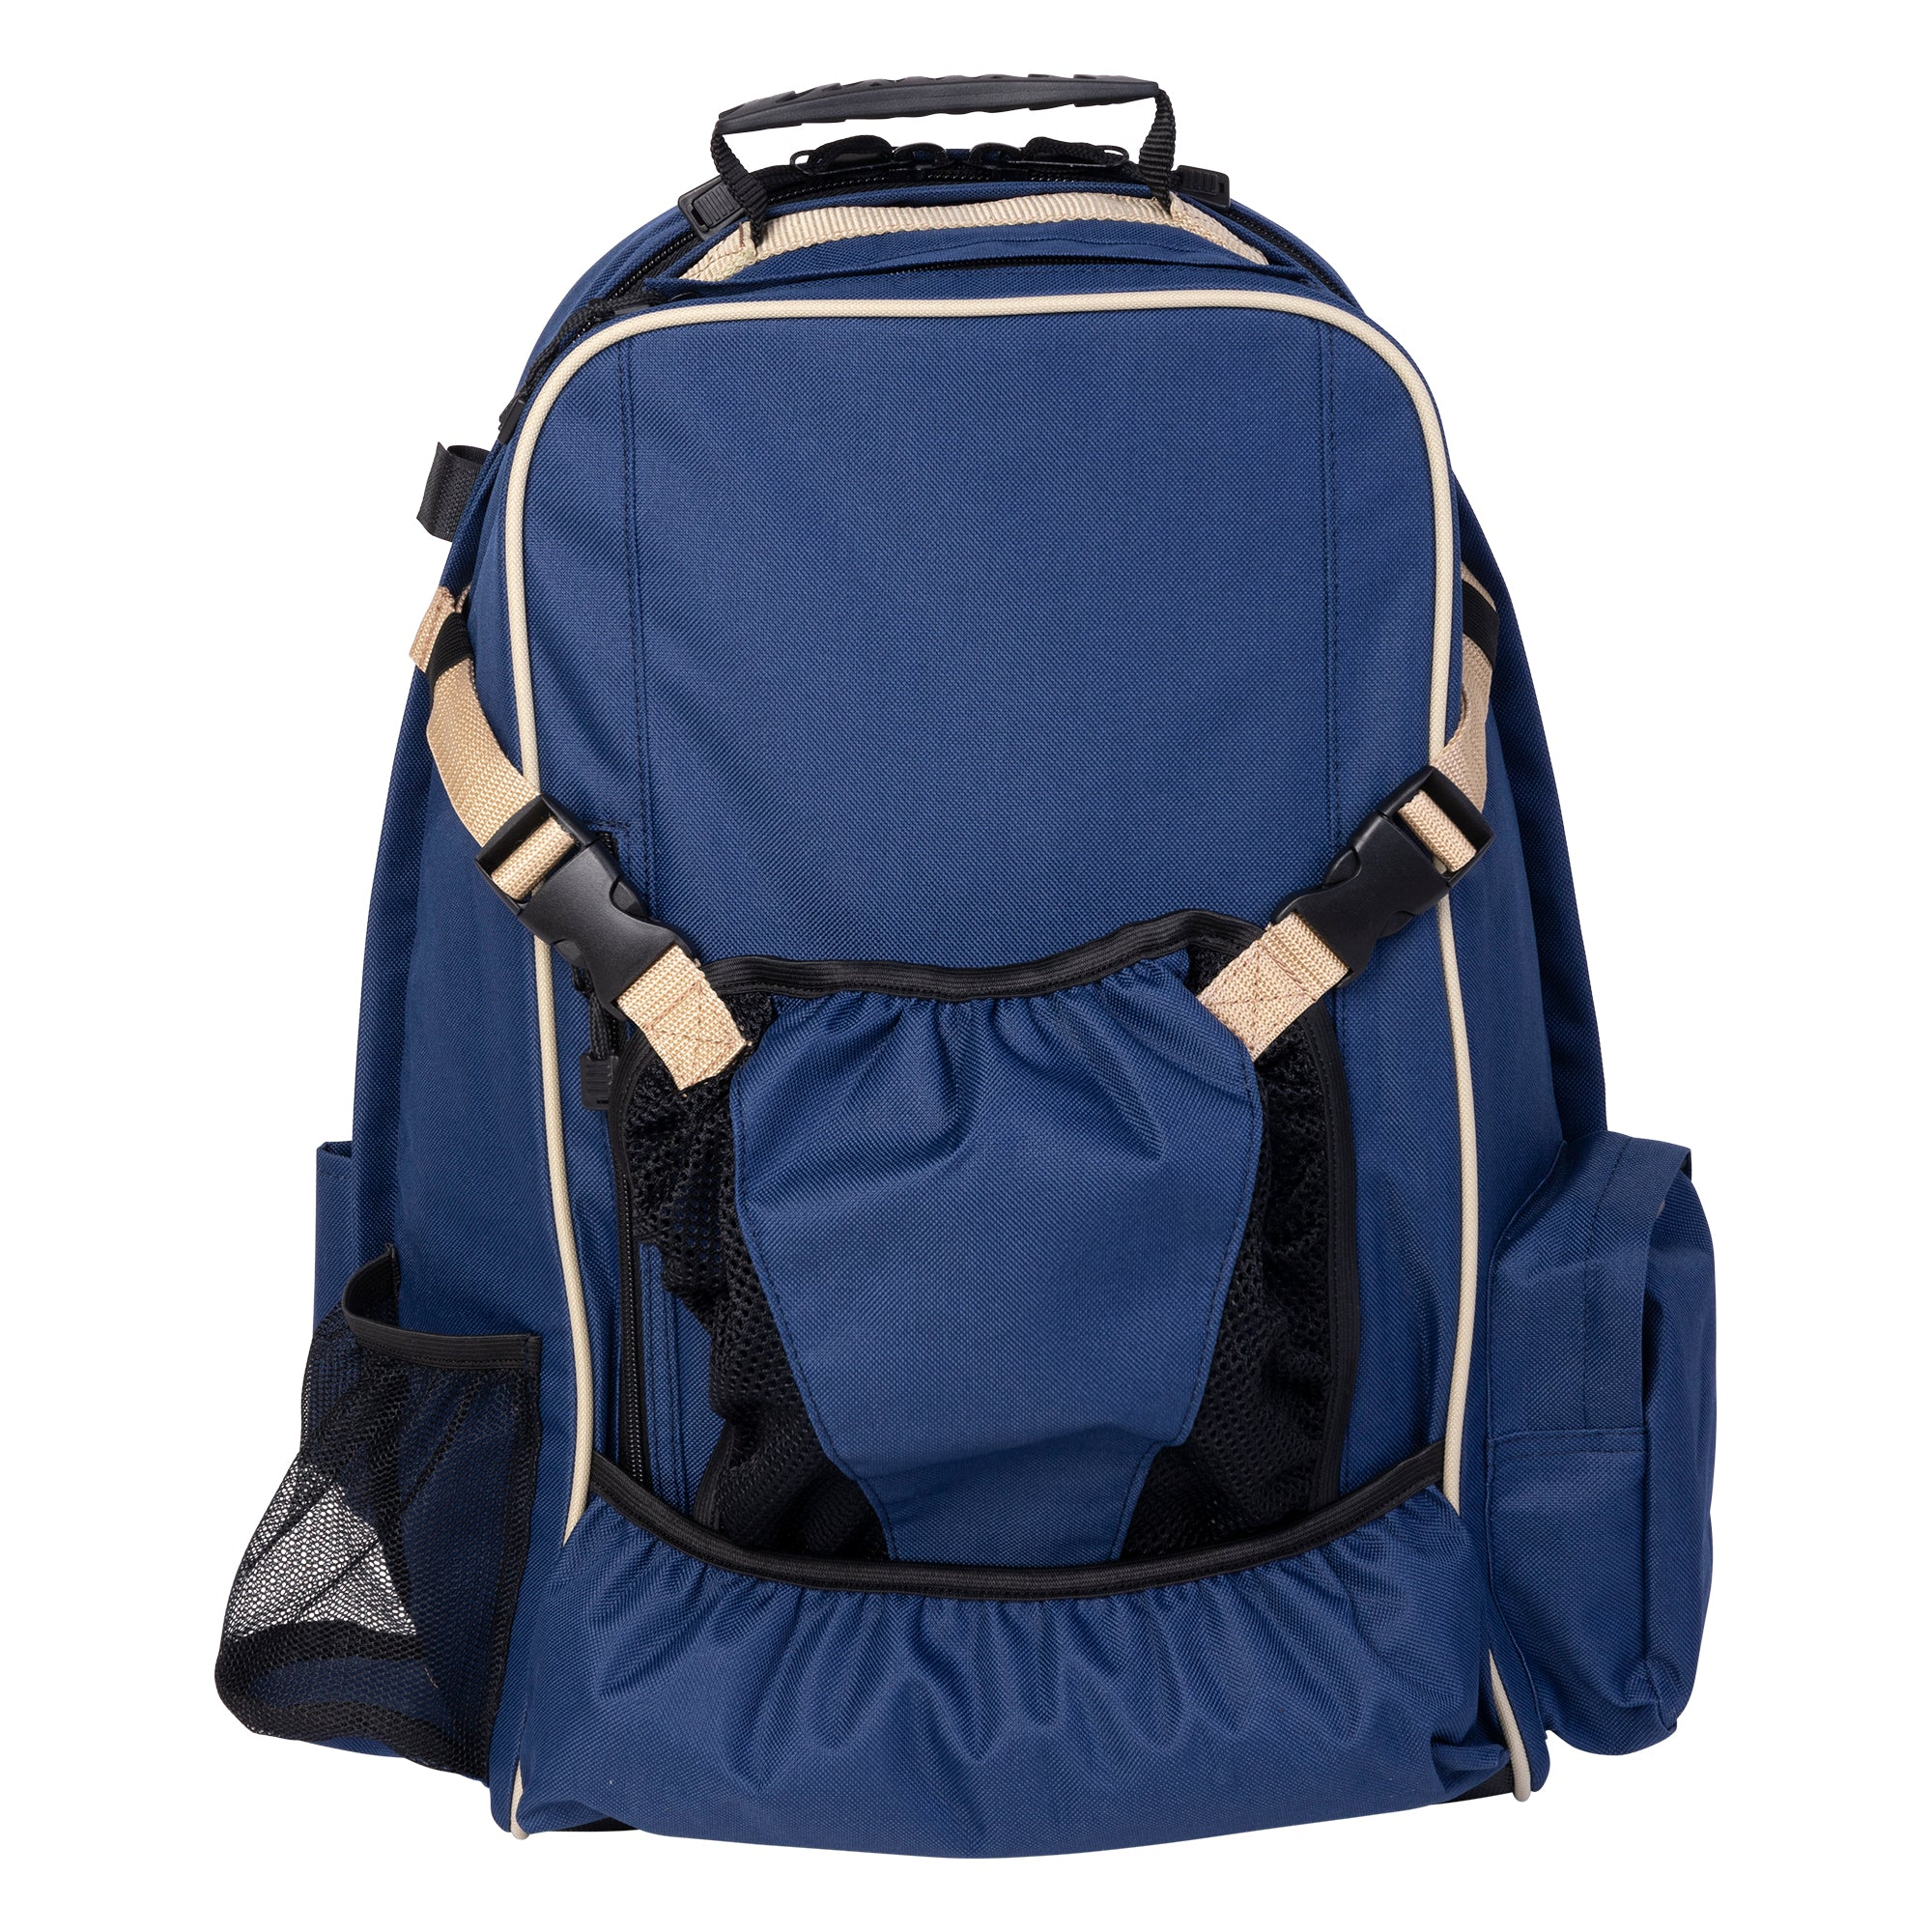 Huntley Equestrian Deluxe Equestrian Backpack, Navy